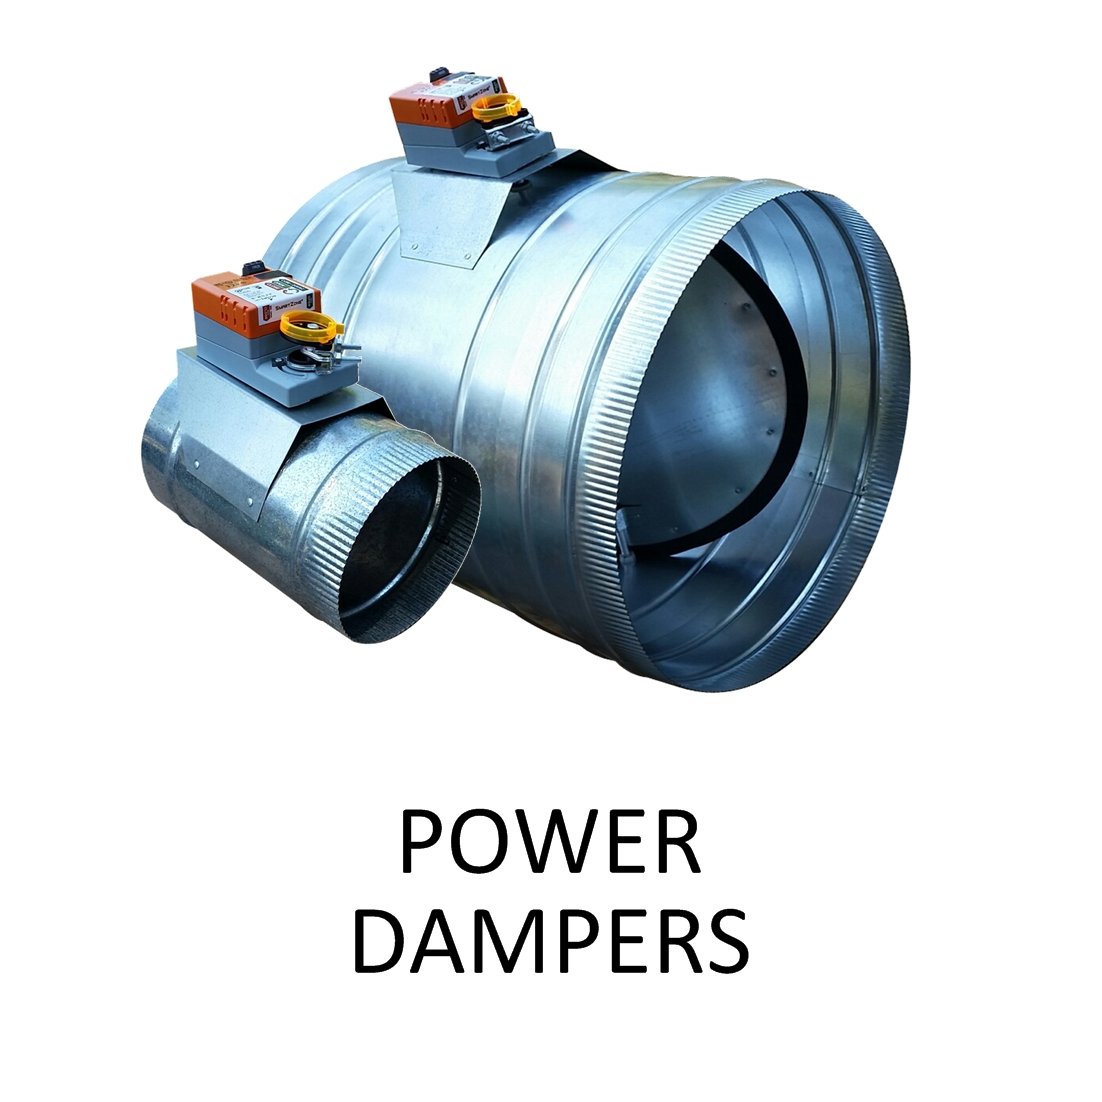 ZoningSupply com - Zone Control - What type of damper is